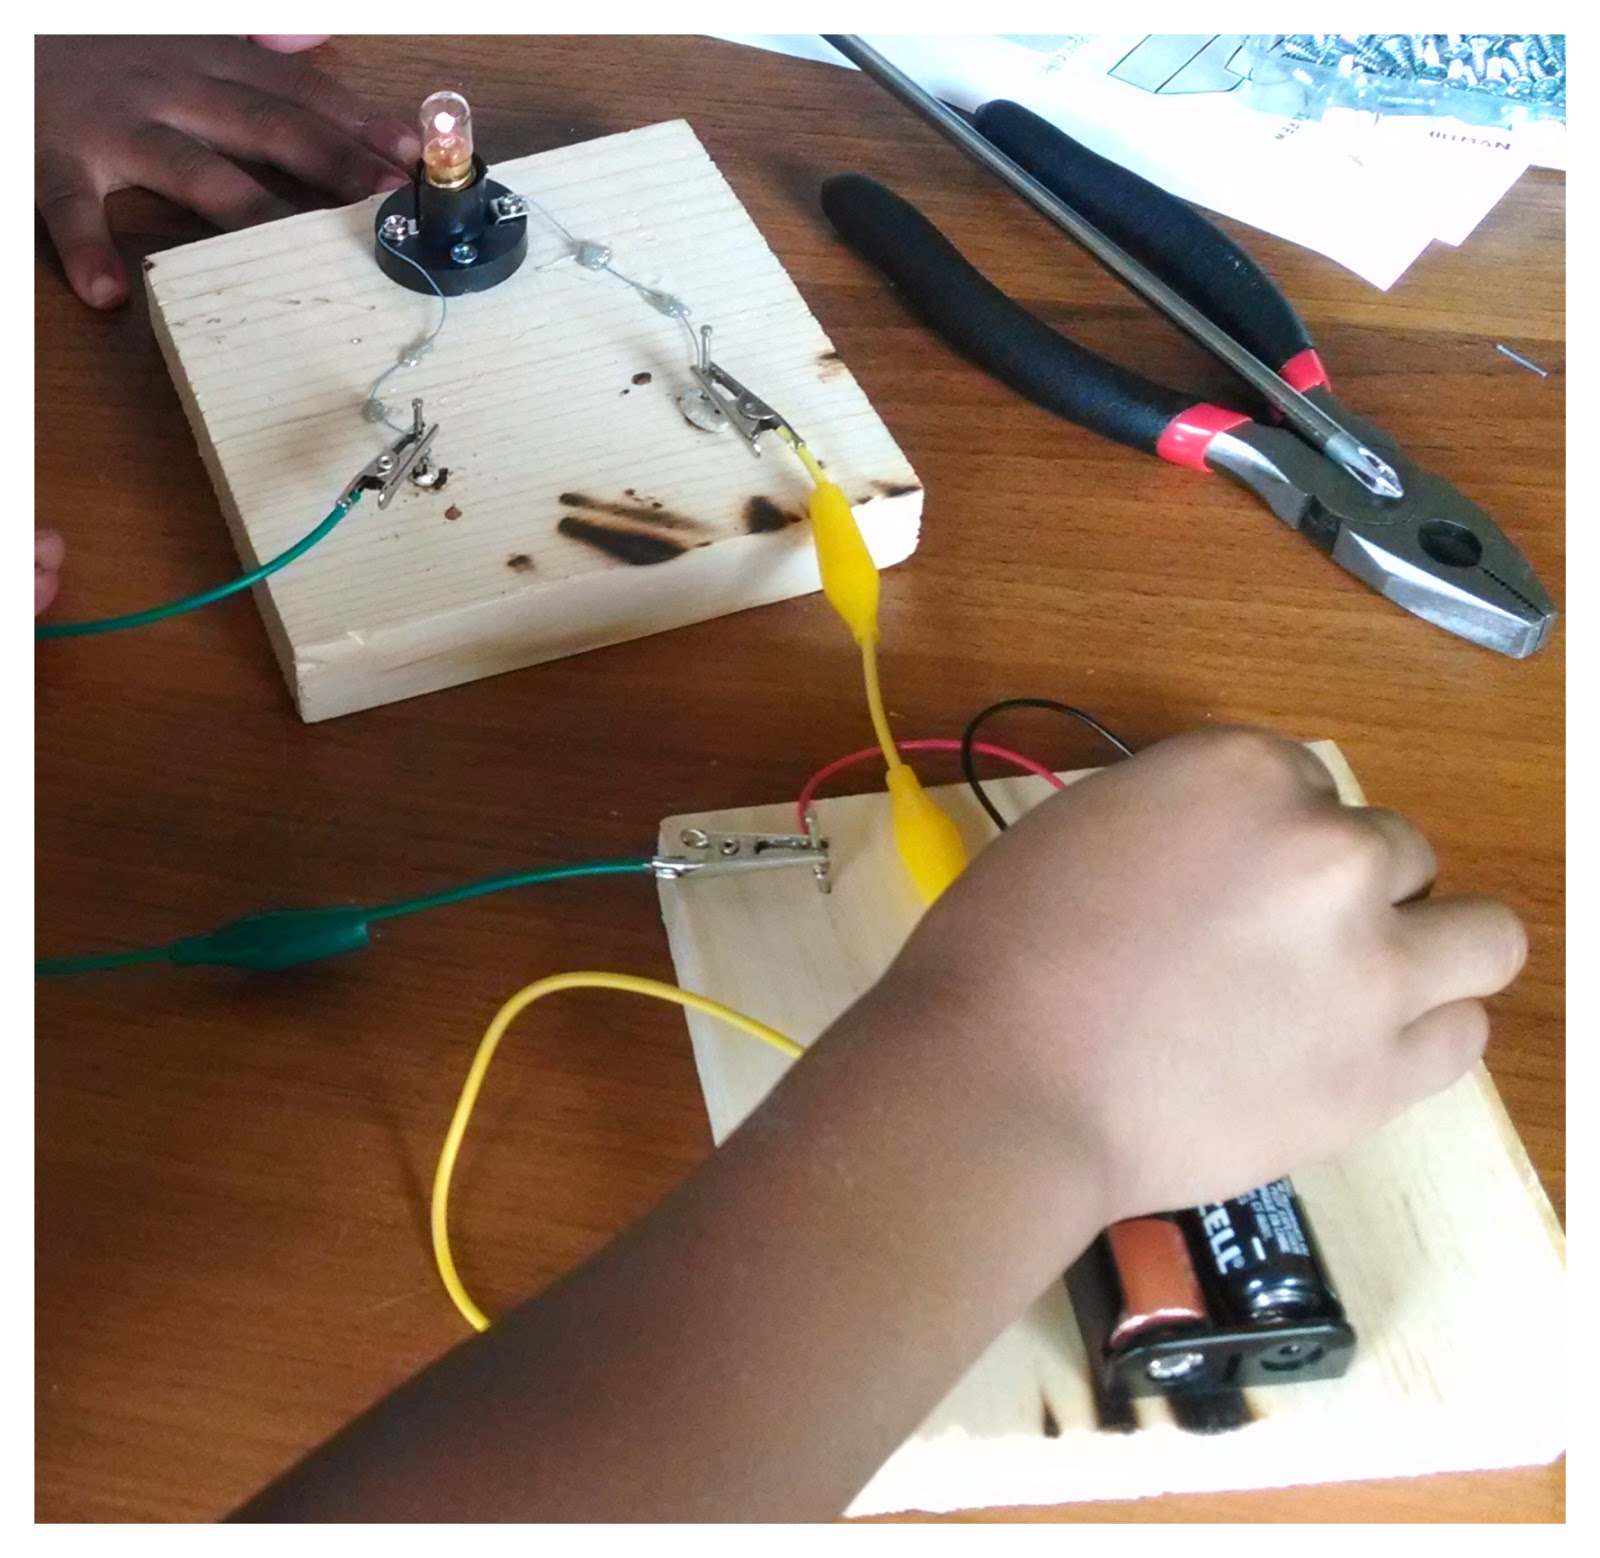 Stem And Flower Family Life For Growing Minds Making Circuit Boards How To Make A Simple Board This Week We Tinkered Around With Circuits Check Out Our Homemade